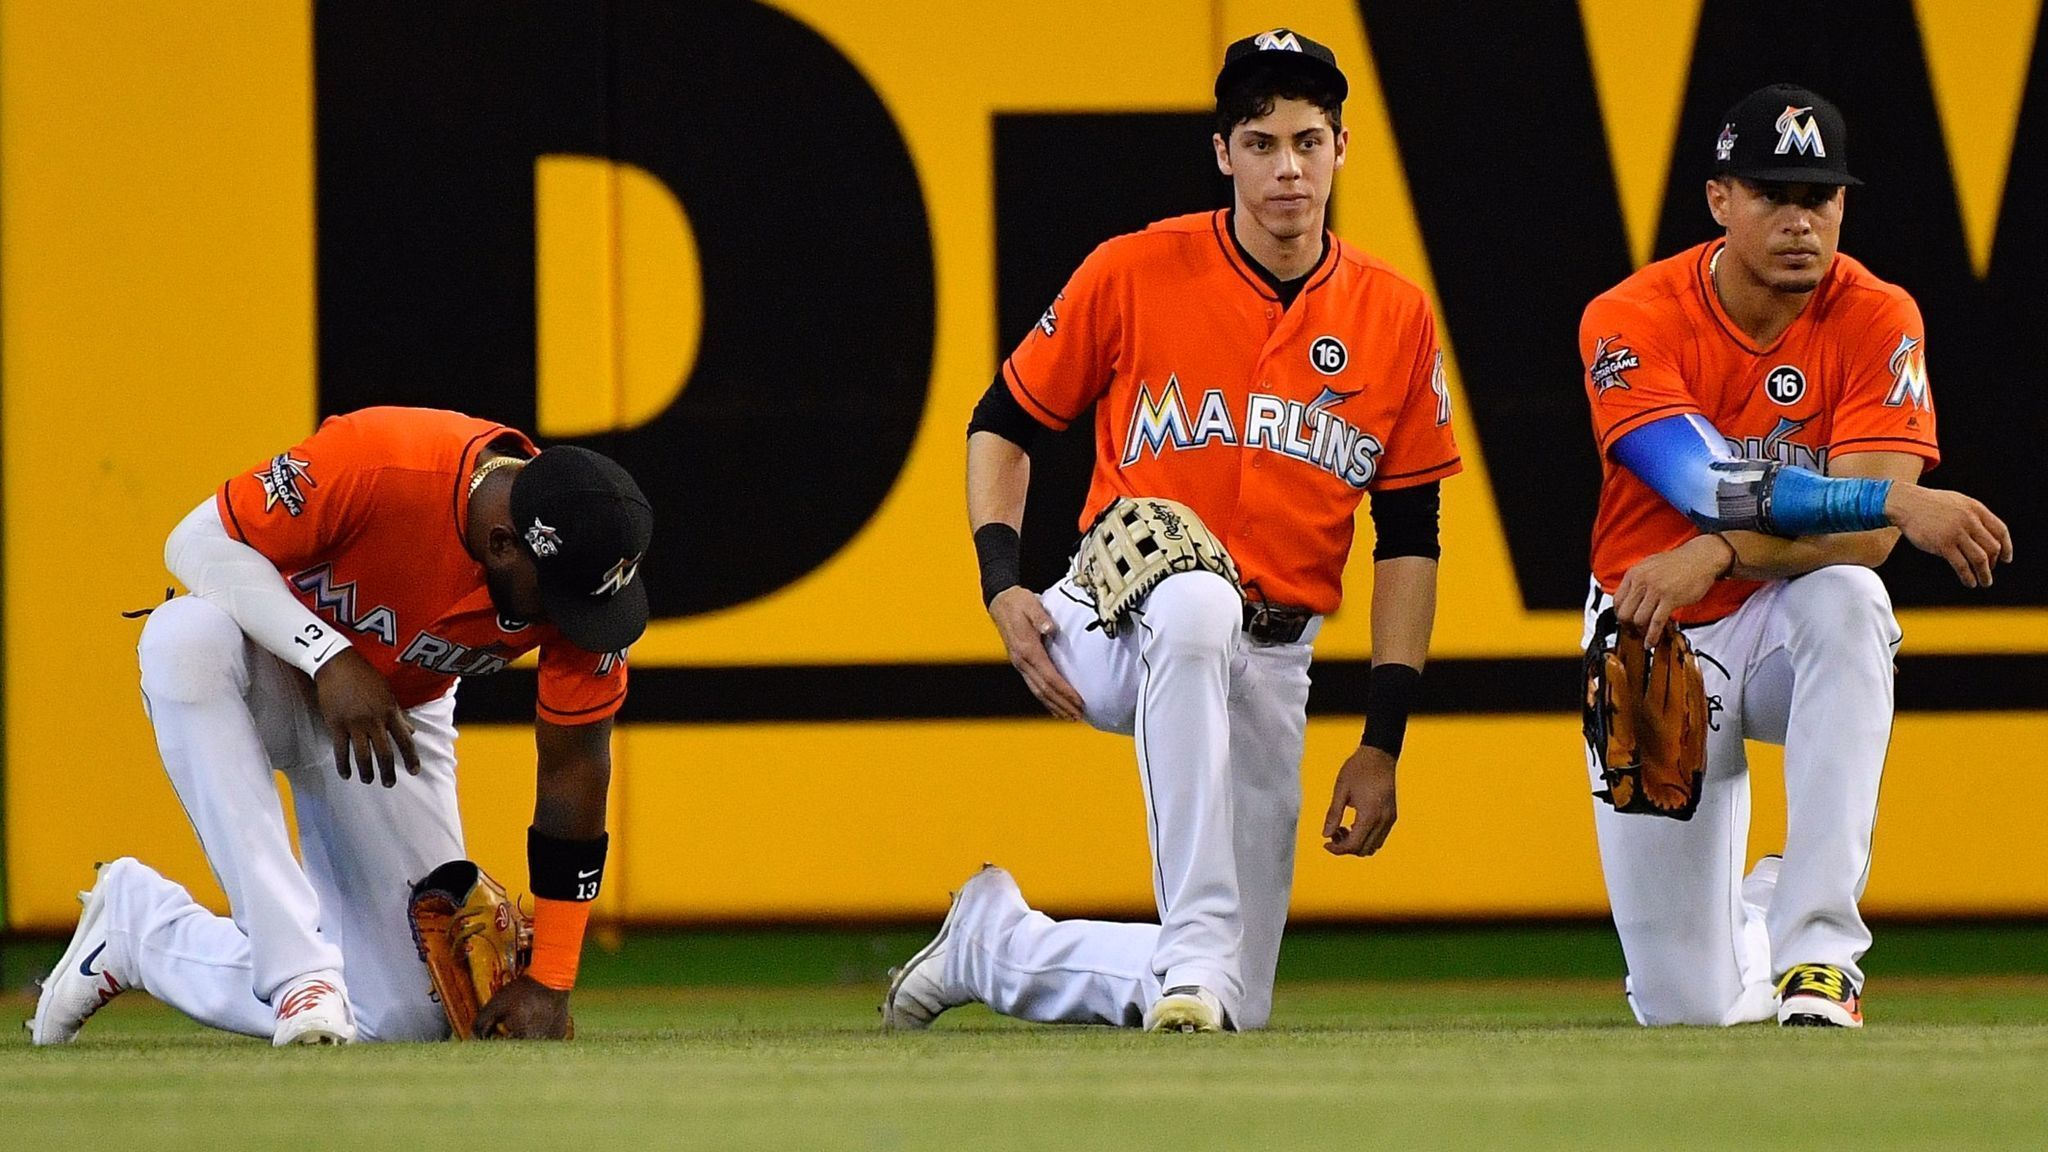 Fl-sp-marlins-notes-thurs-20170914